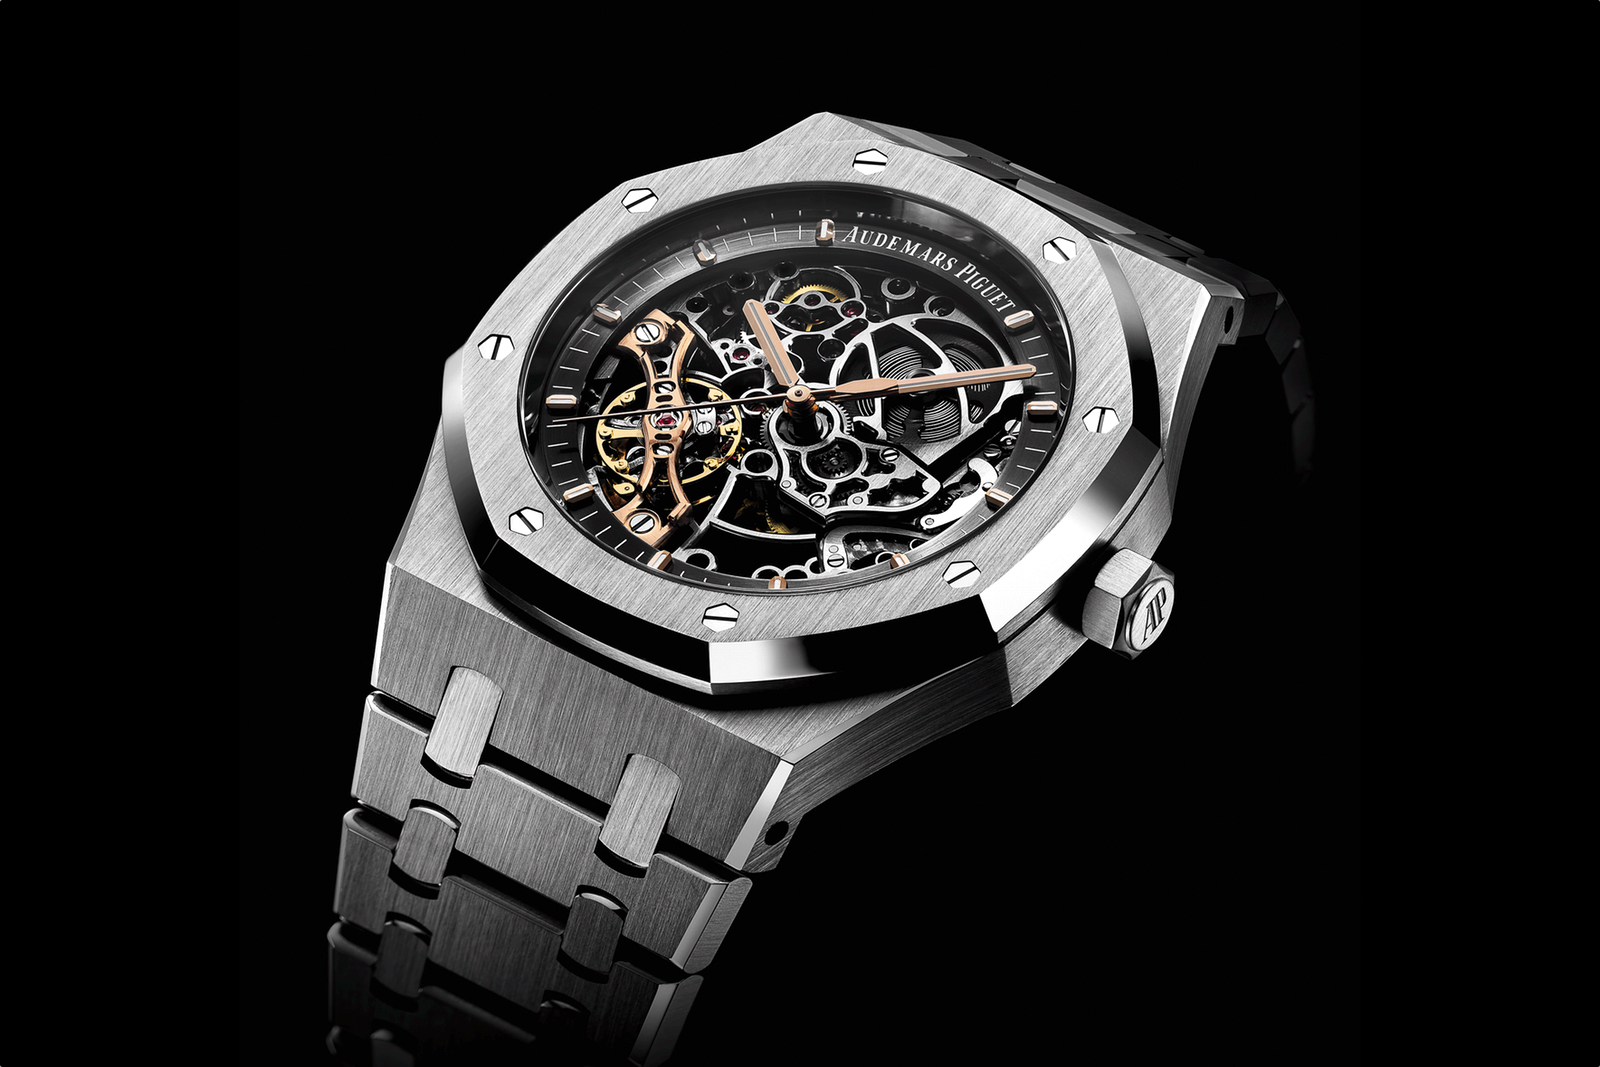 Audemars-Piguet-Royal-Oak-Double-Balance-Wheel-Open-Worked-steel-three-quarter-thumb-1600x1067-28127